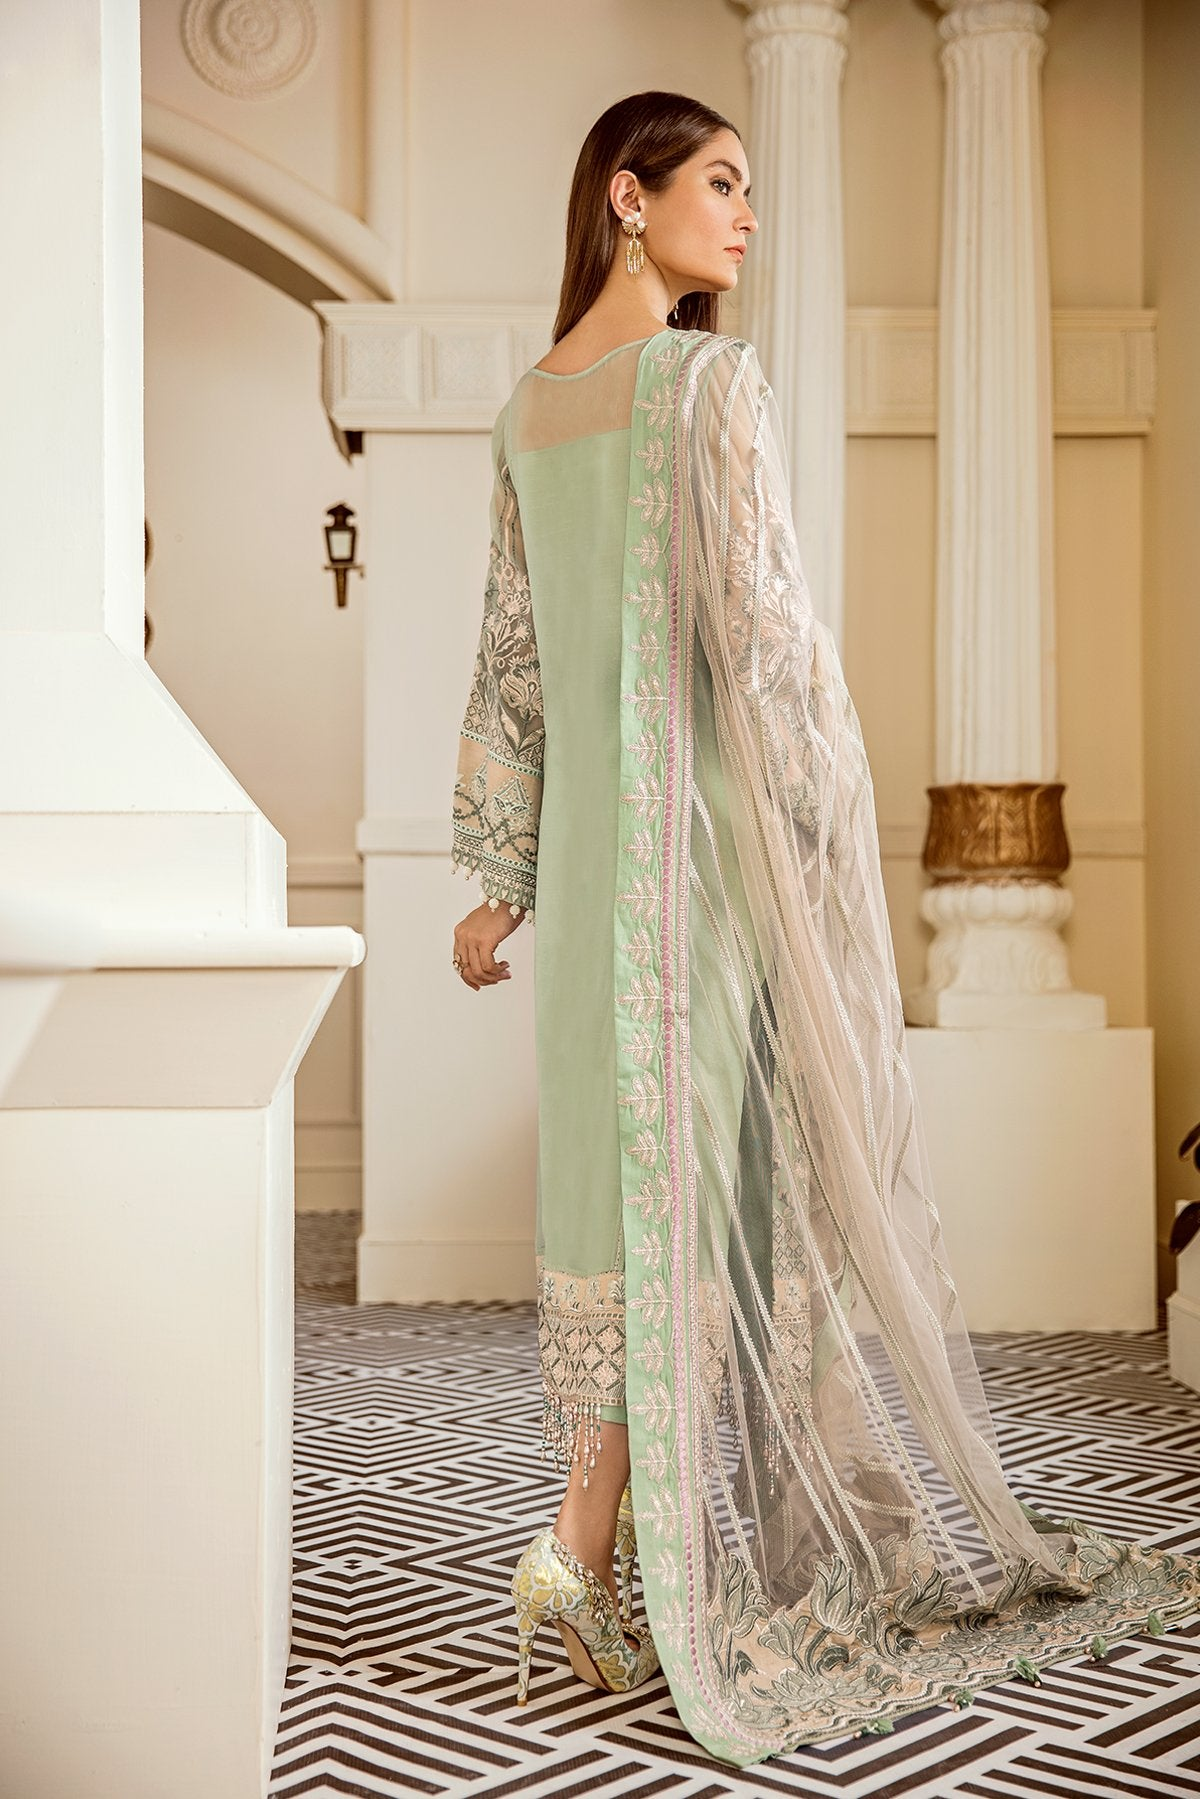 Mint Tea (Baroque Chantelle Embroidered Chiffon)